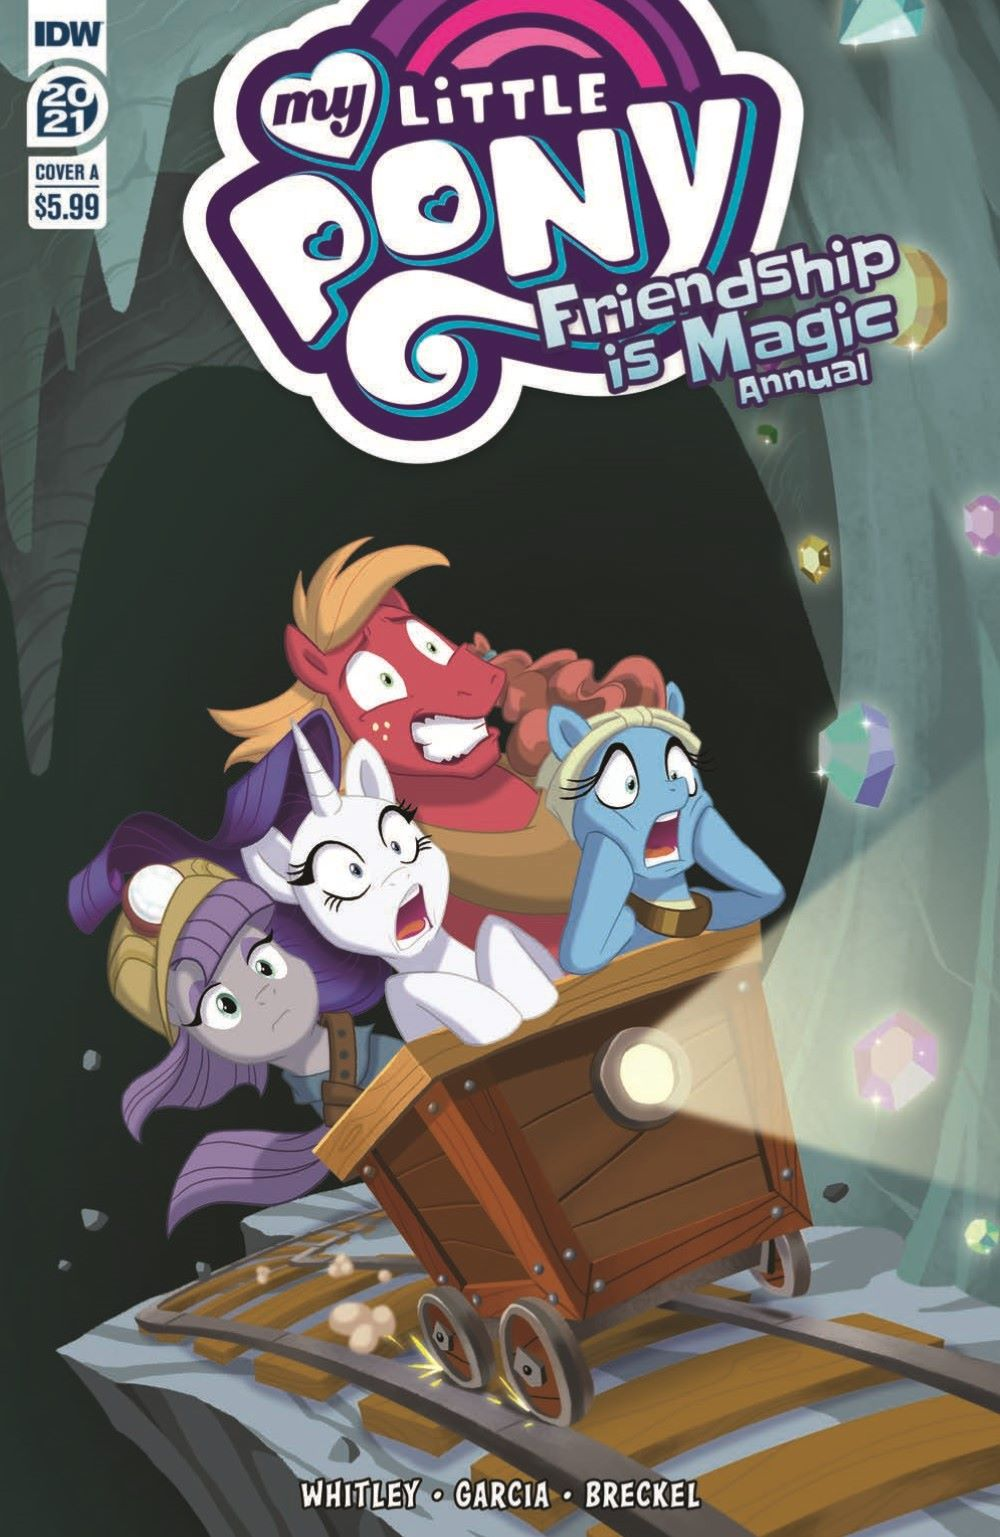 MLP_Annual2021-pr-1 ComicList Previews: MY LITTLE PONY FRIENDSHIP IS MAGIC 2021 ANNUAL